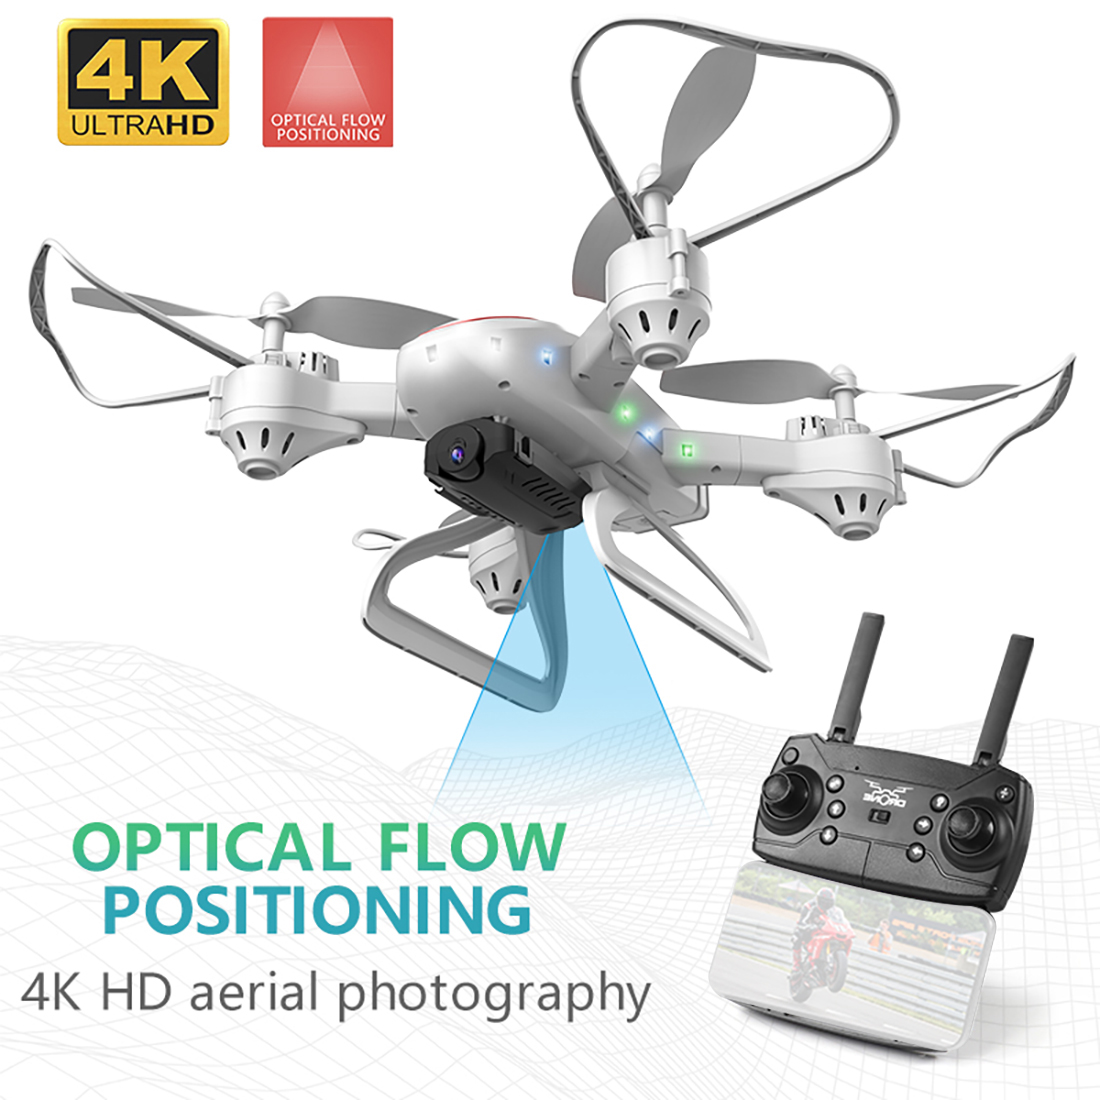 KY909 4K HD Camera Drone FPV WIFI Optical Flow Positioning RC Quadcopter Plane Folded Altitude Hold Long Battery Life Kids Toys